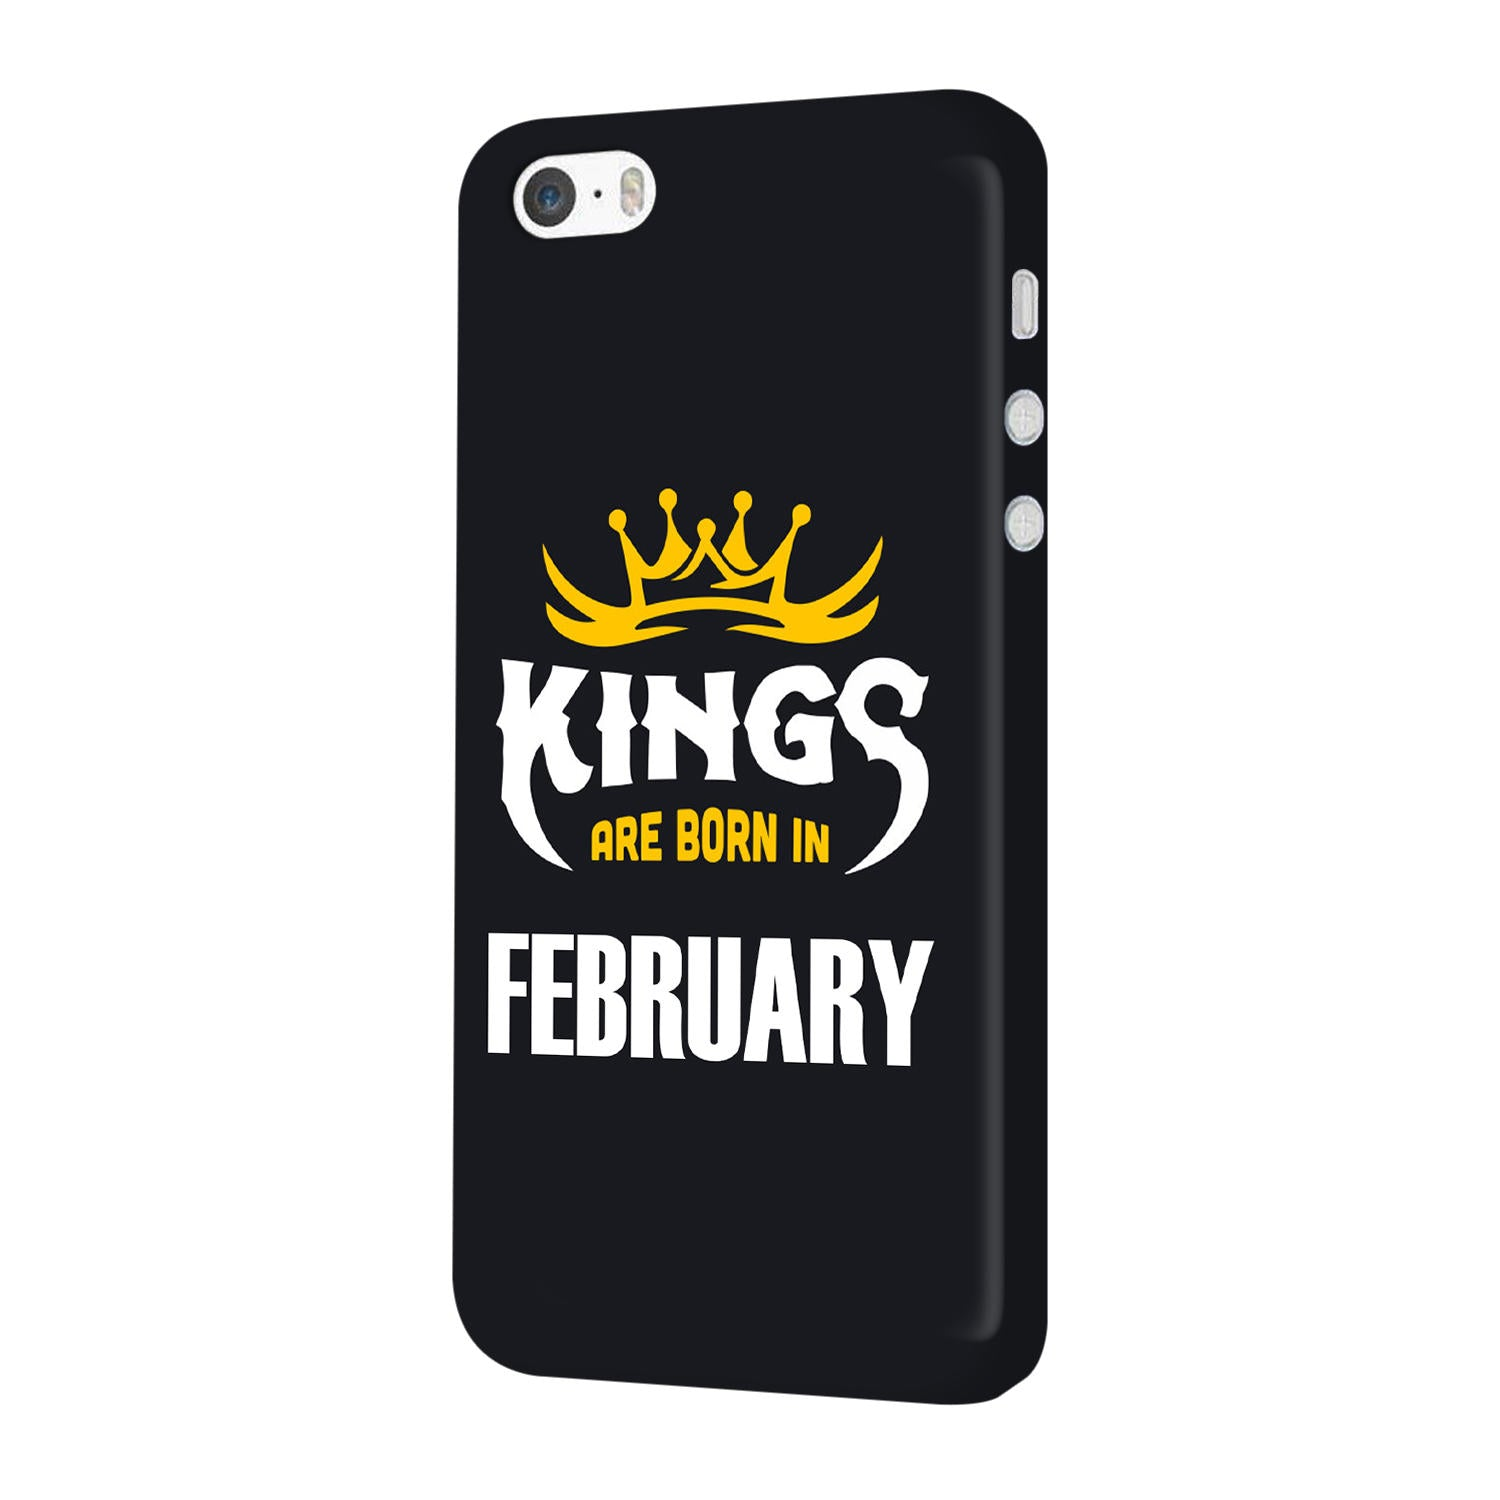 Kings February - Narcissist iPhone 5 Mobile Cover Case